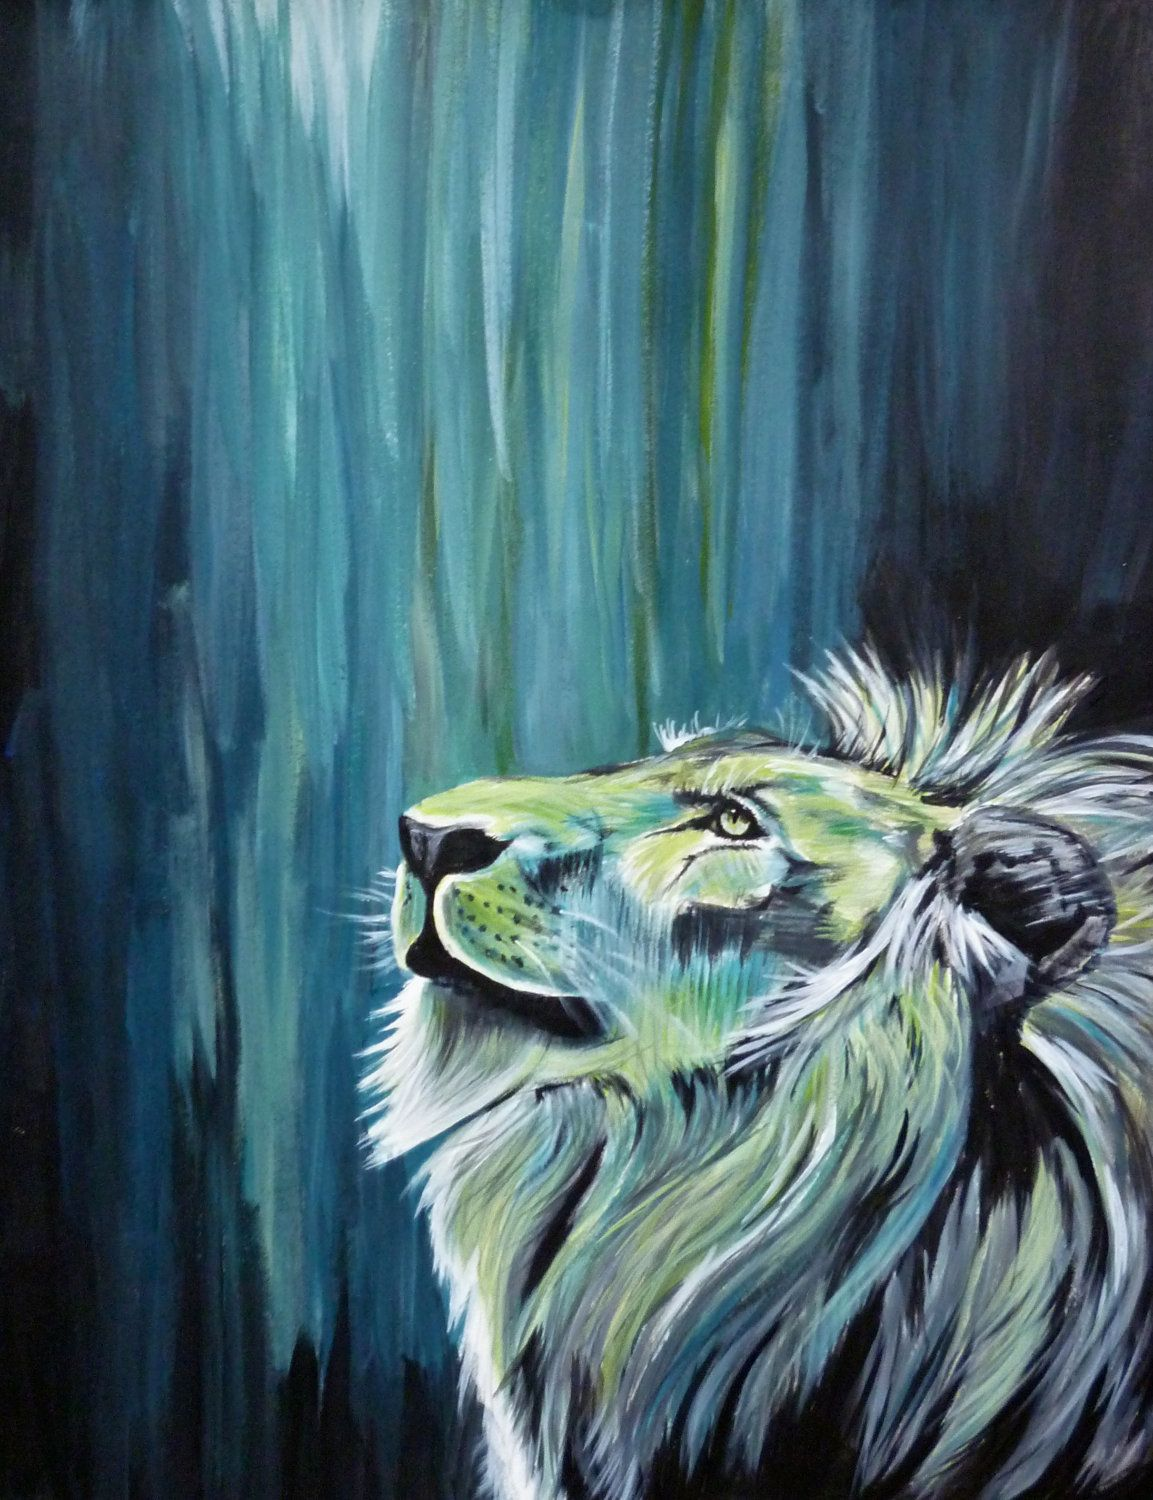 Tattoo background shading ideas color i would never get a lion tattooed lol but i love the neon colors on